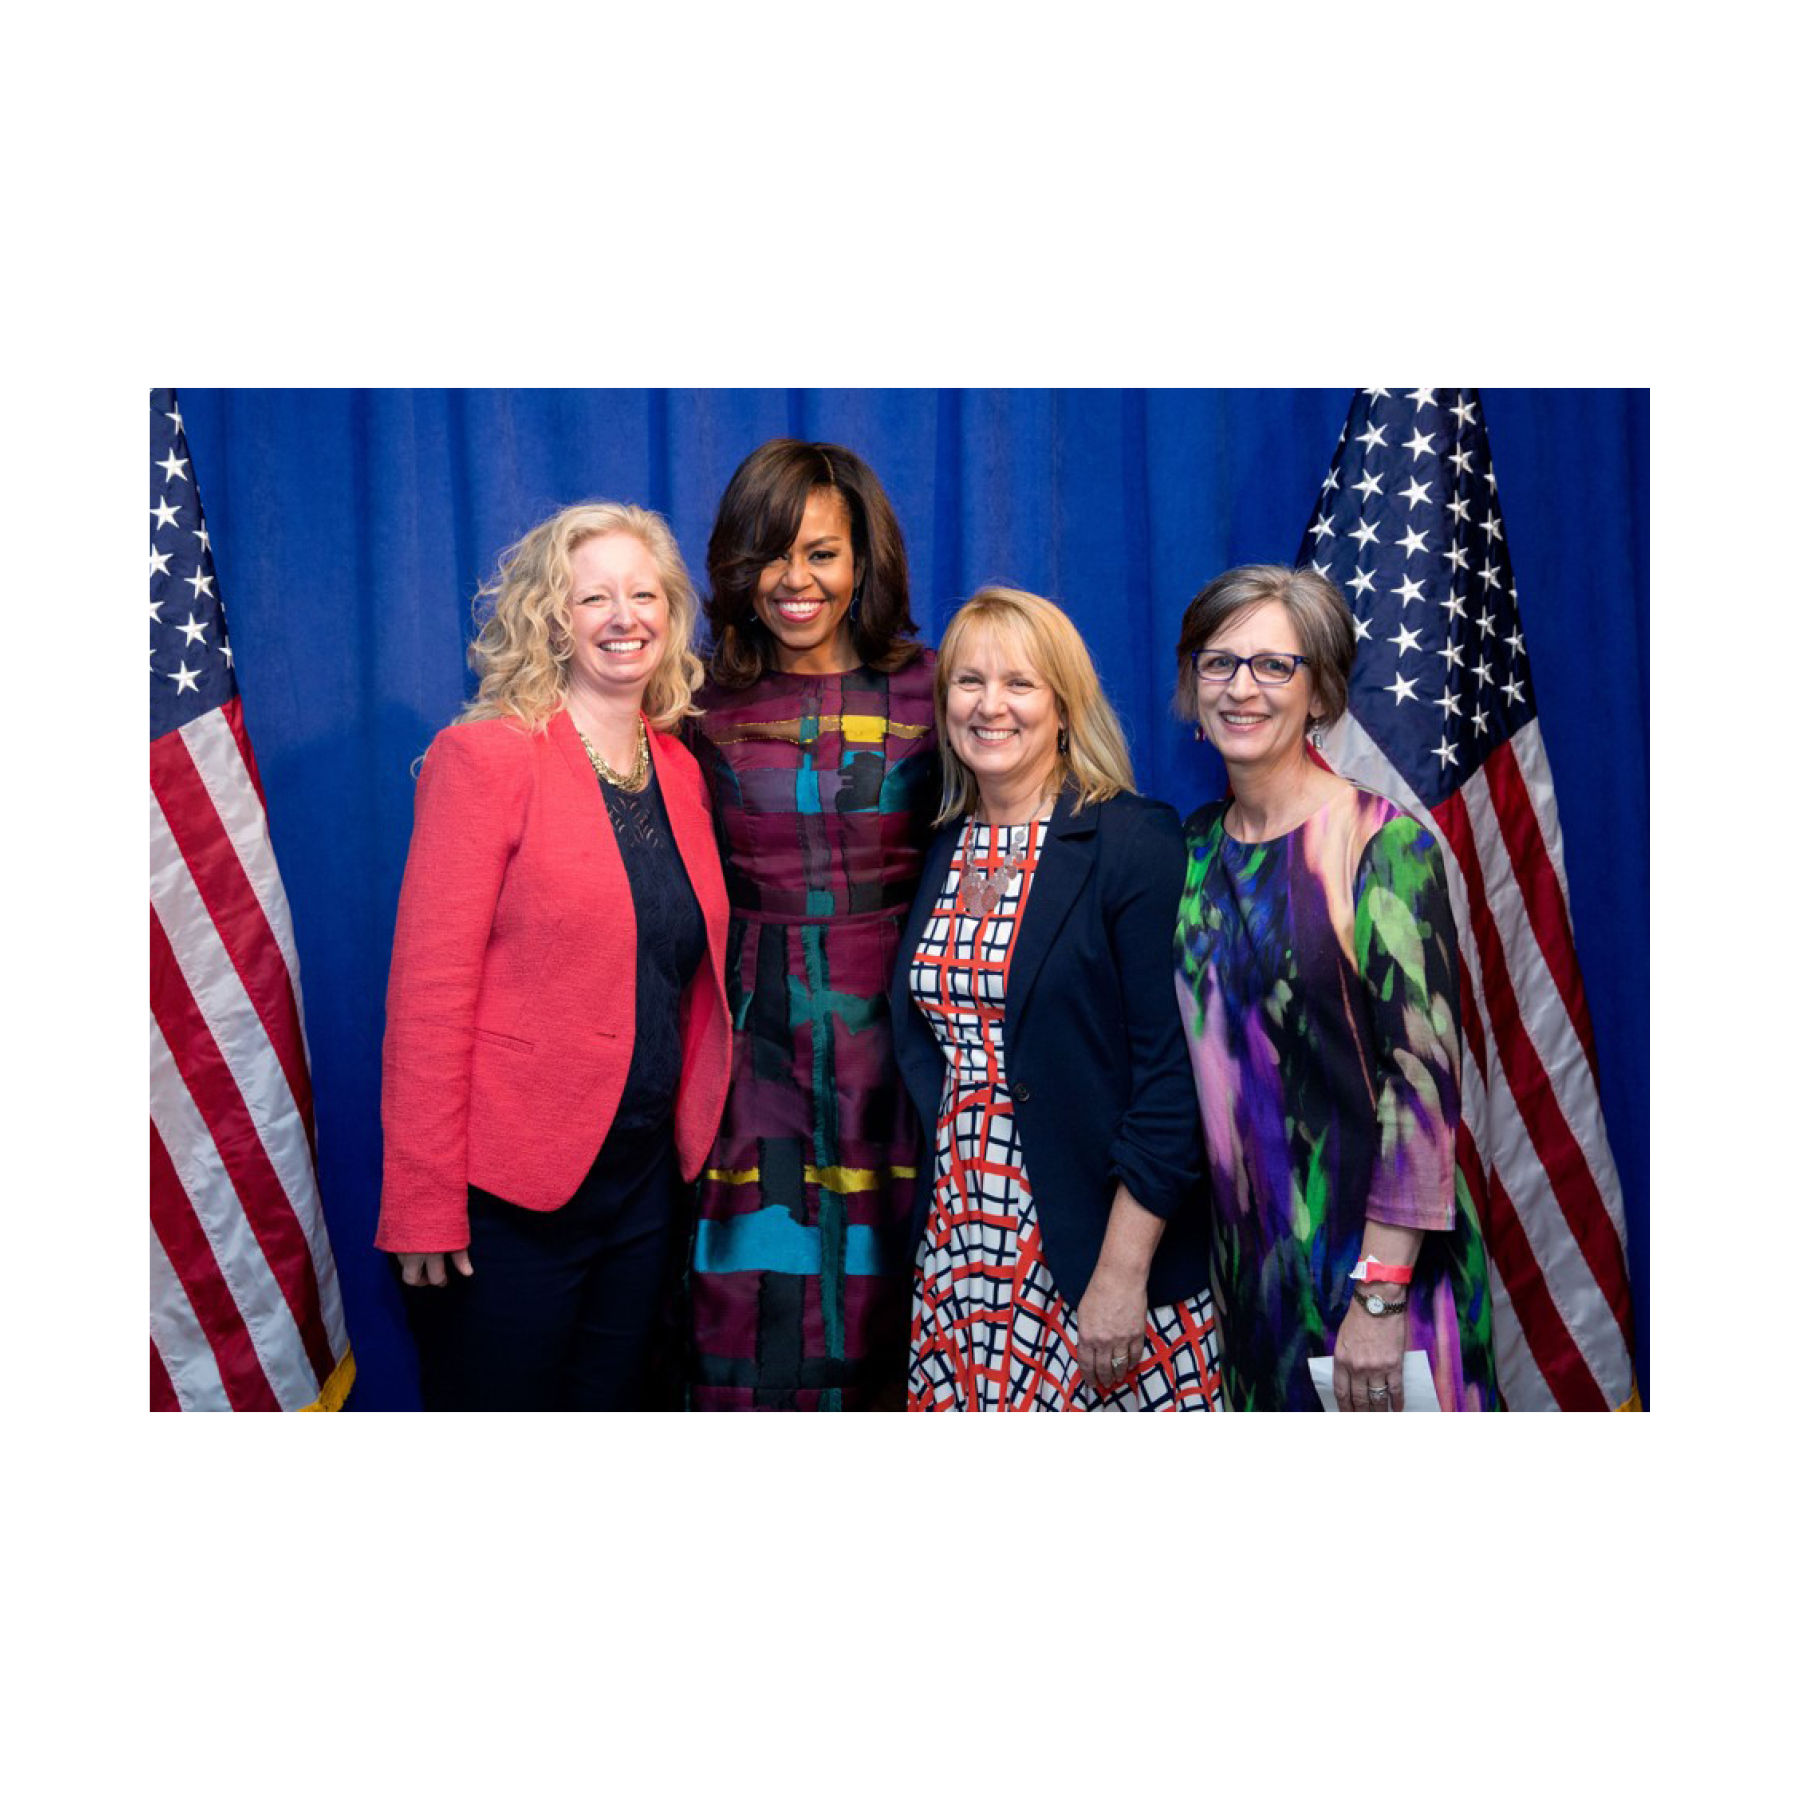 2016 —After Barb co-founded Dining for Women in 2003, the organization partnered with the Peace Corps as well as Michelle Obama's Let Girls Learn initiative, to take down barriers and send 62 million girls to school. ( Left to right: Beth Ellen Holimon, DFW president; Michelle Obama; Marsha Wallace, DFW co-founder; and Barbara Fintel Collins, DFW co-founder; photo courtesy of Barack Obama Presidential Library)